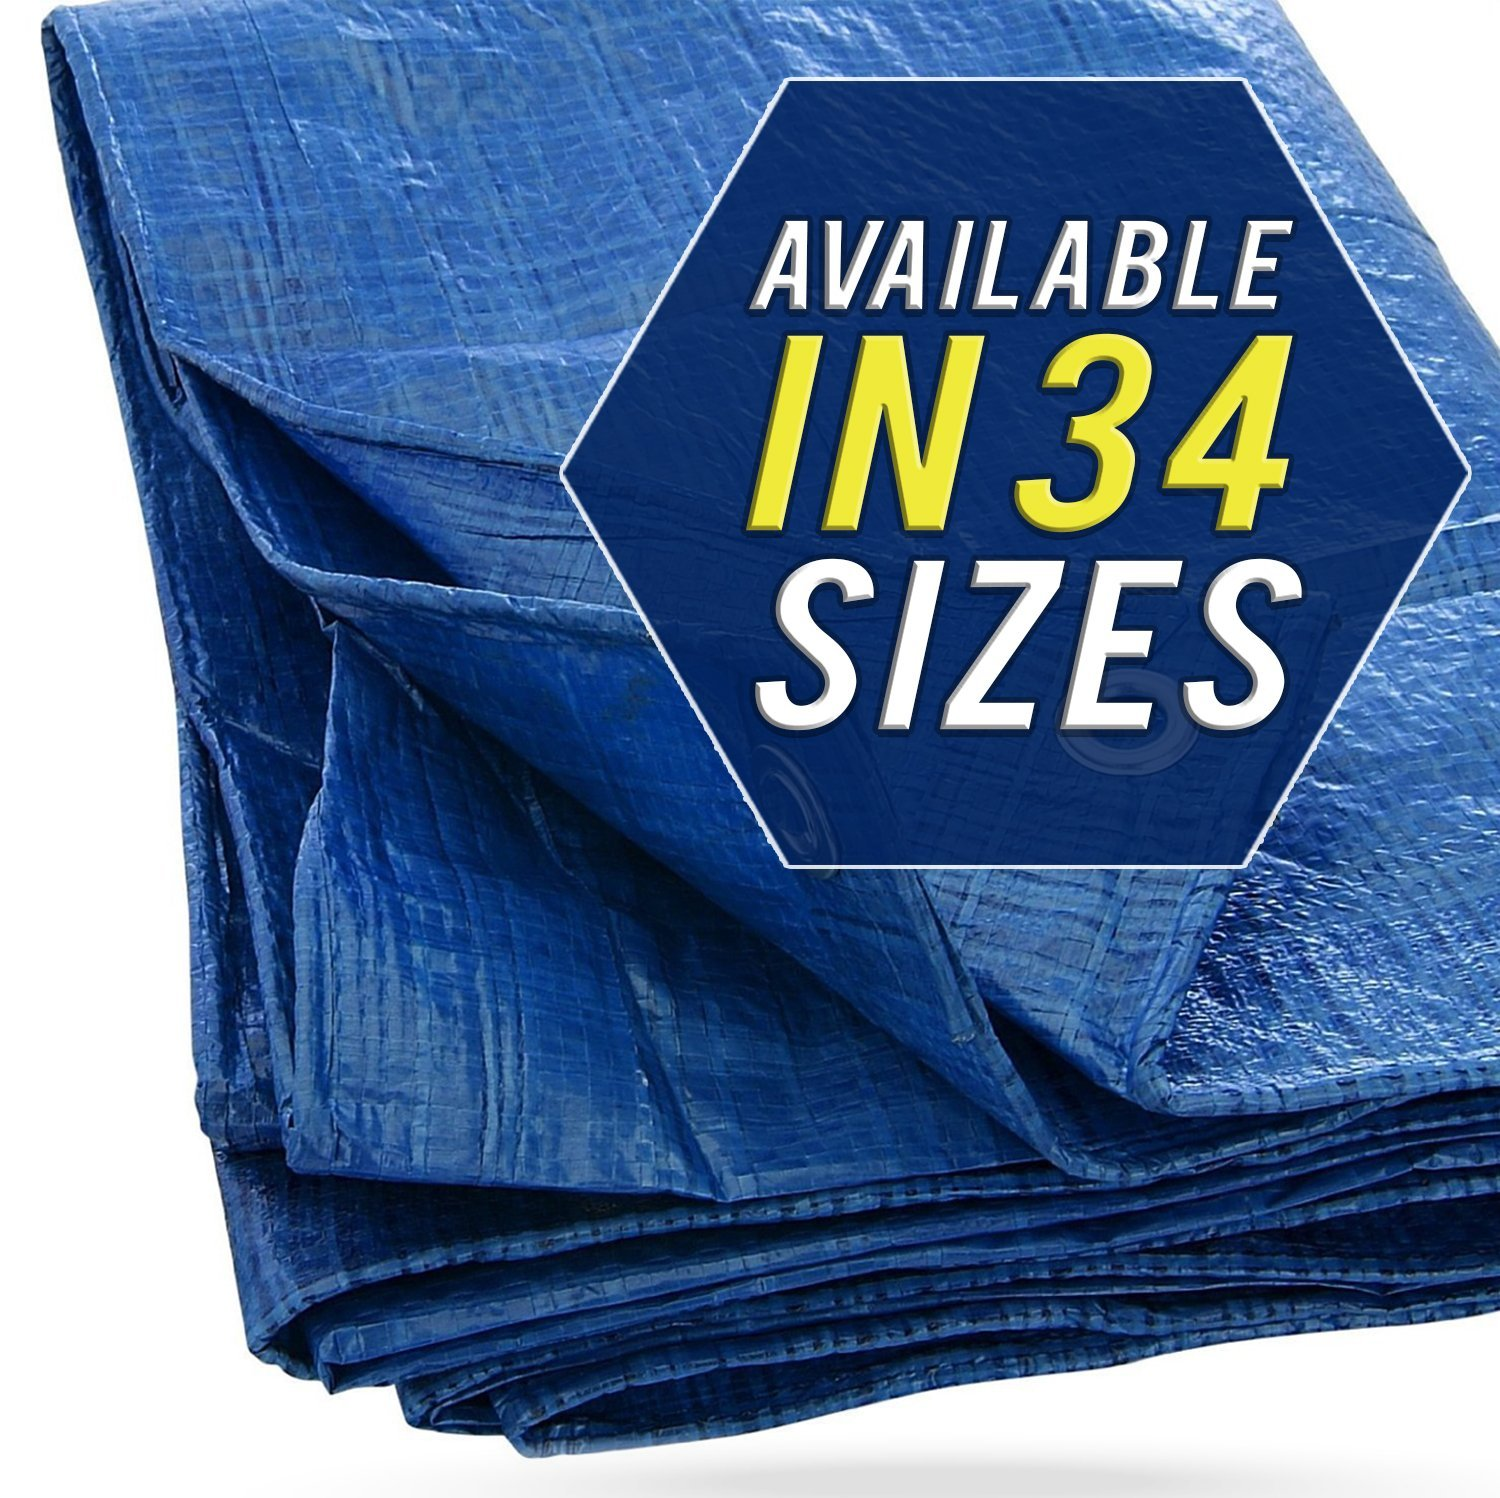 Heavy-Duty Poly Tarp with Grommets Secured Tie-Down Boats 20x20 Waterproof Tarp Cover 5mil Thick Cars and Trucks Outdoor Tarp for Pools P-LINE Large Blue Tarp Cover